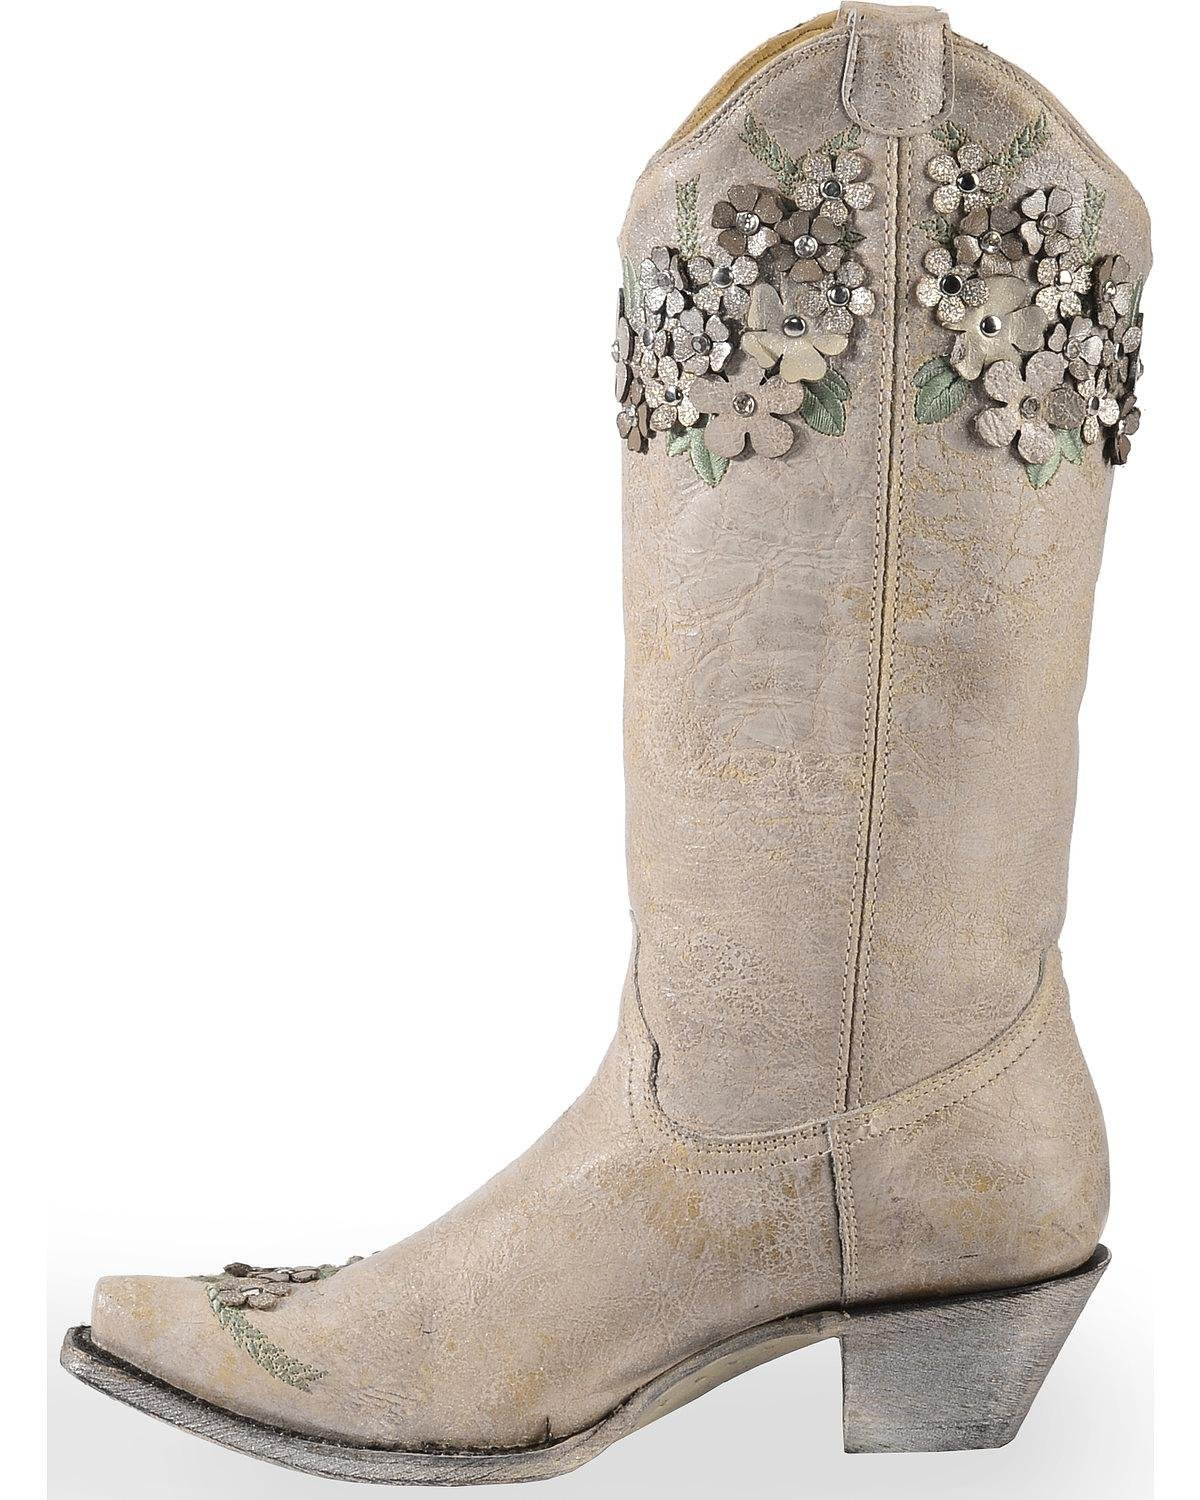 CORRAL Women's White Floral Overlay Embroidered Stud and Crystals Cowgirl Boot - A3600 B07B4DWCHR 7.5 B(M) US|White